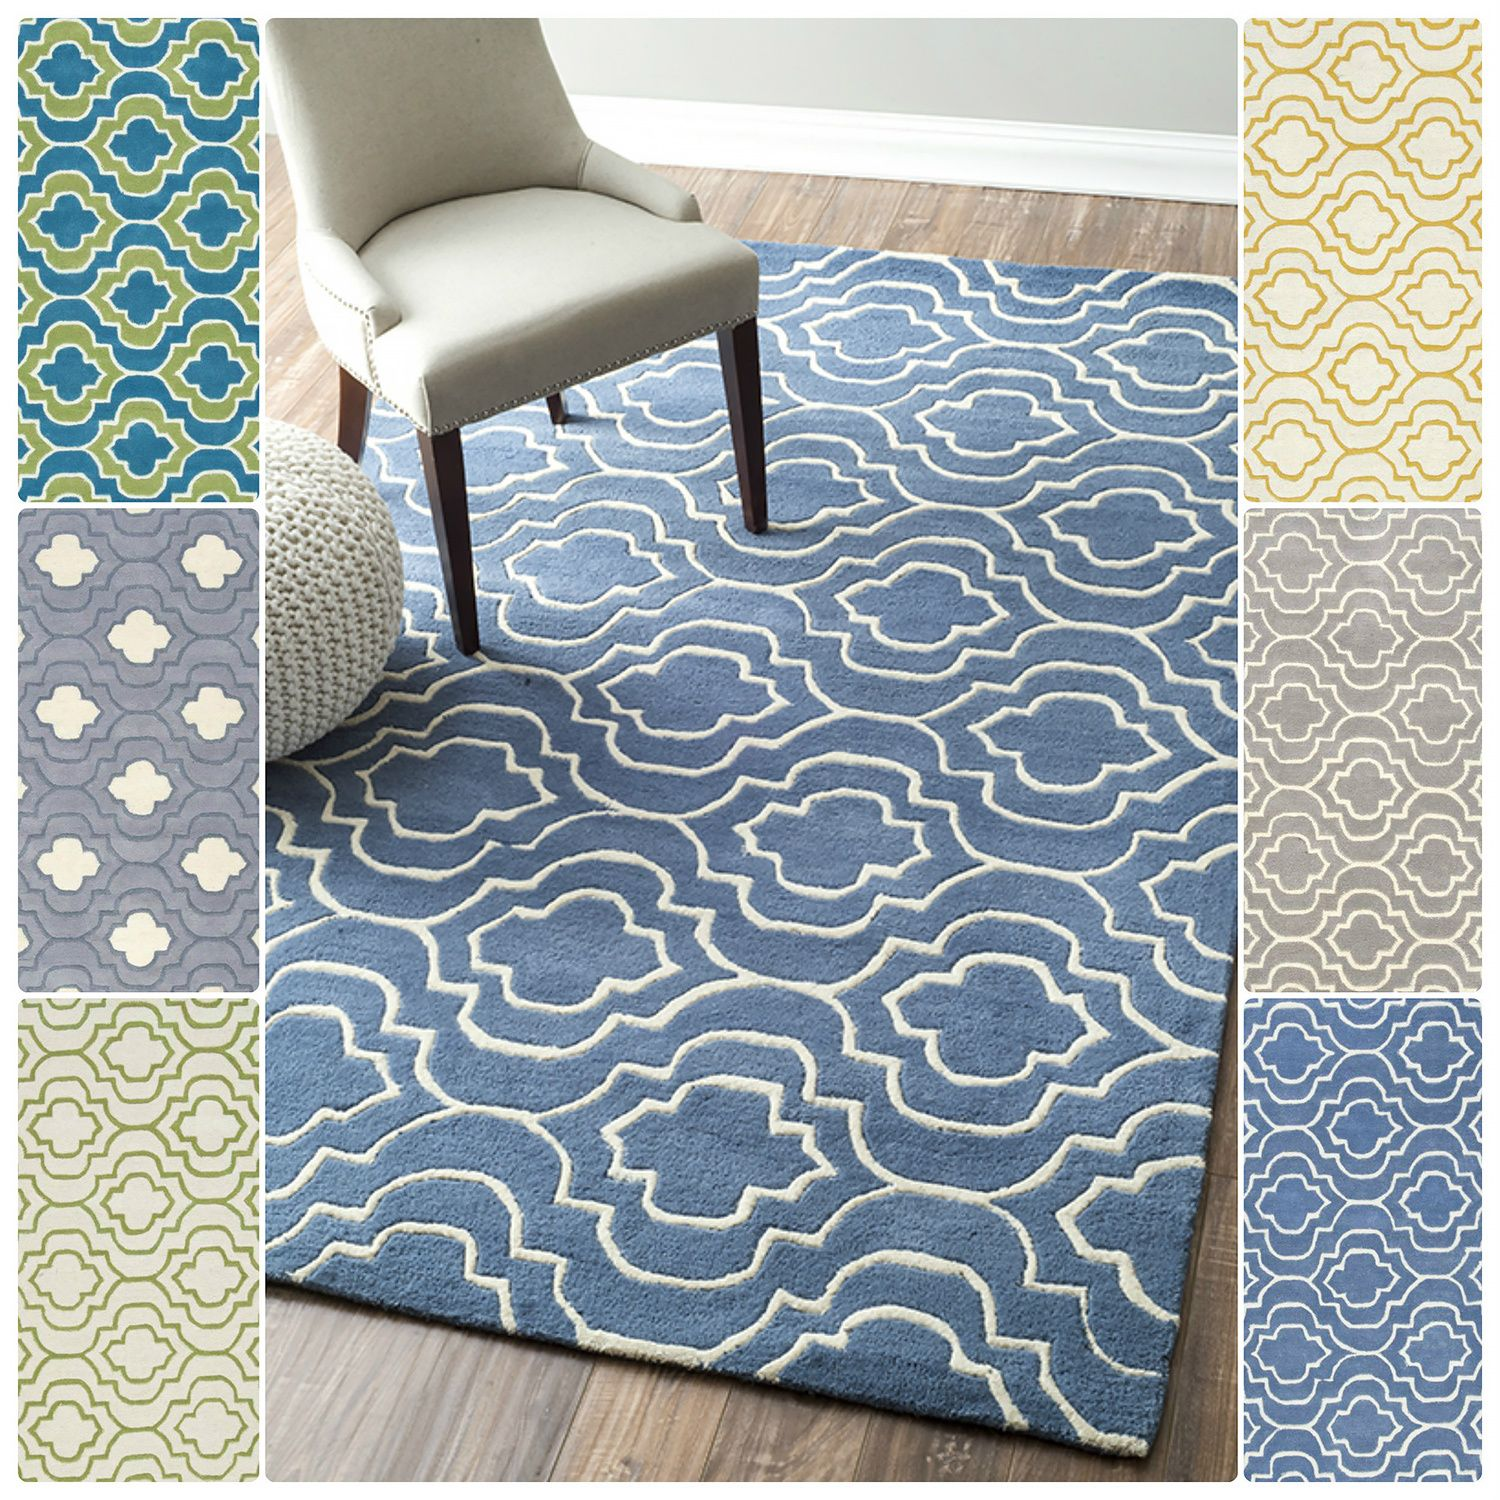 Bring Style And Elegance Into Your Room Setting With This Wool Rug Is